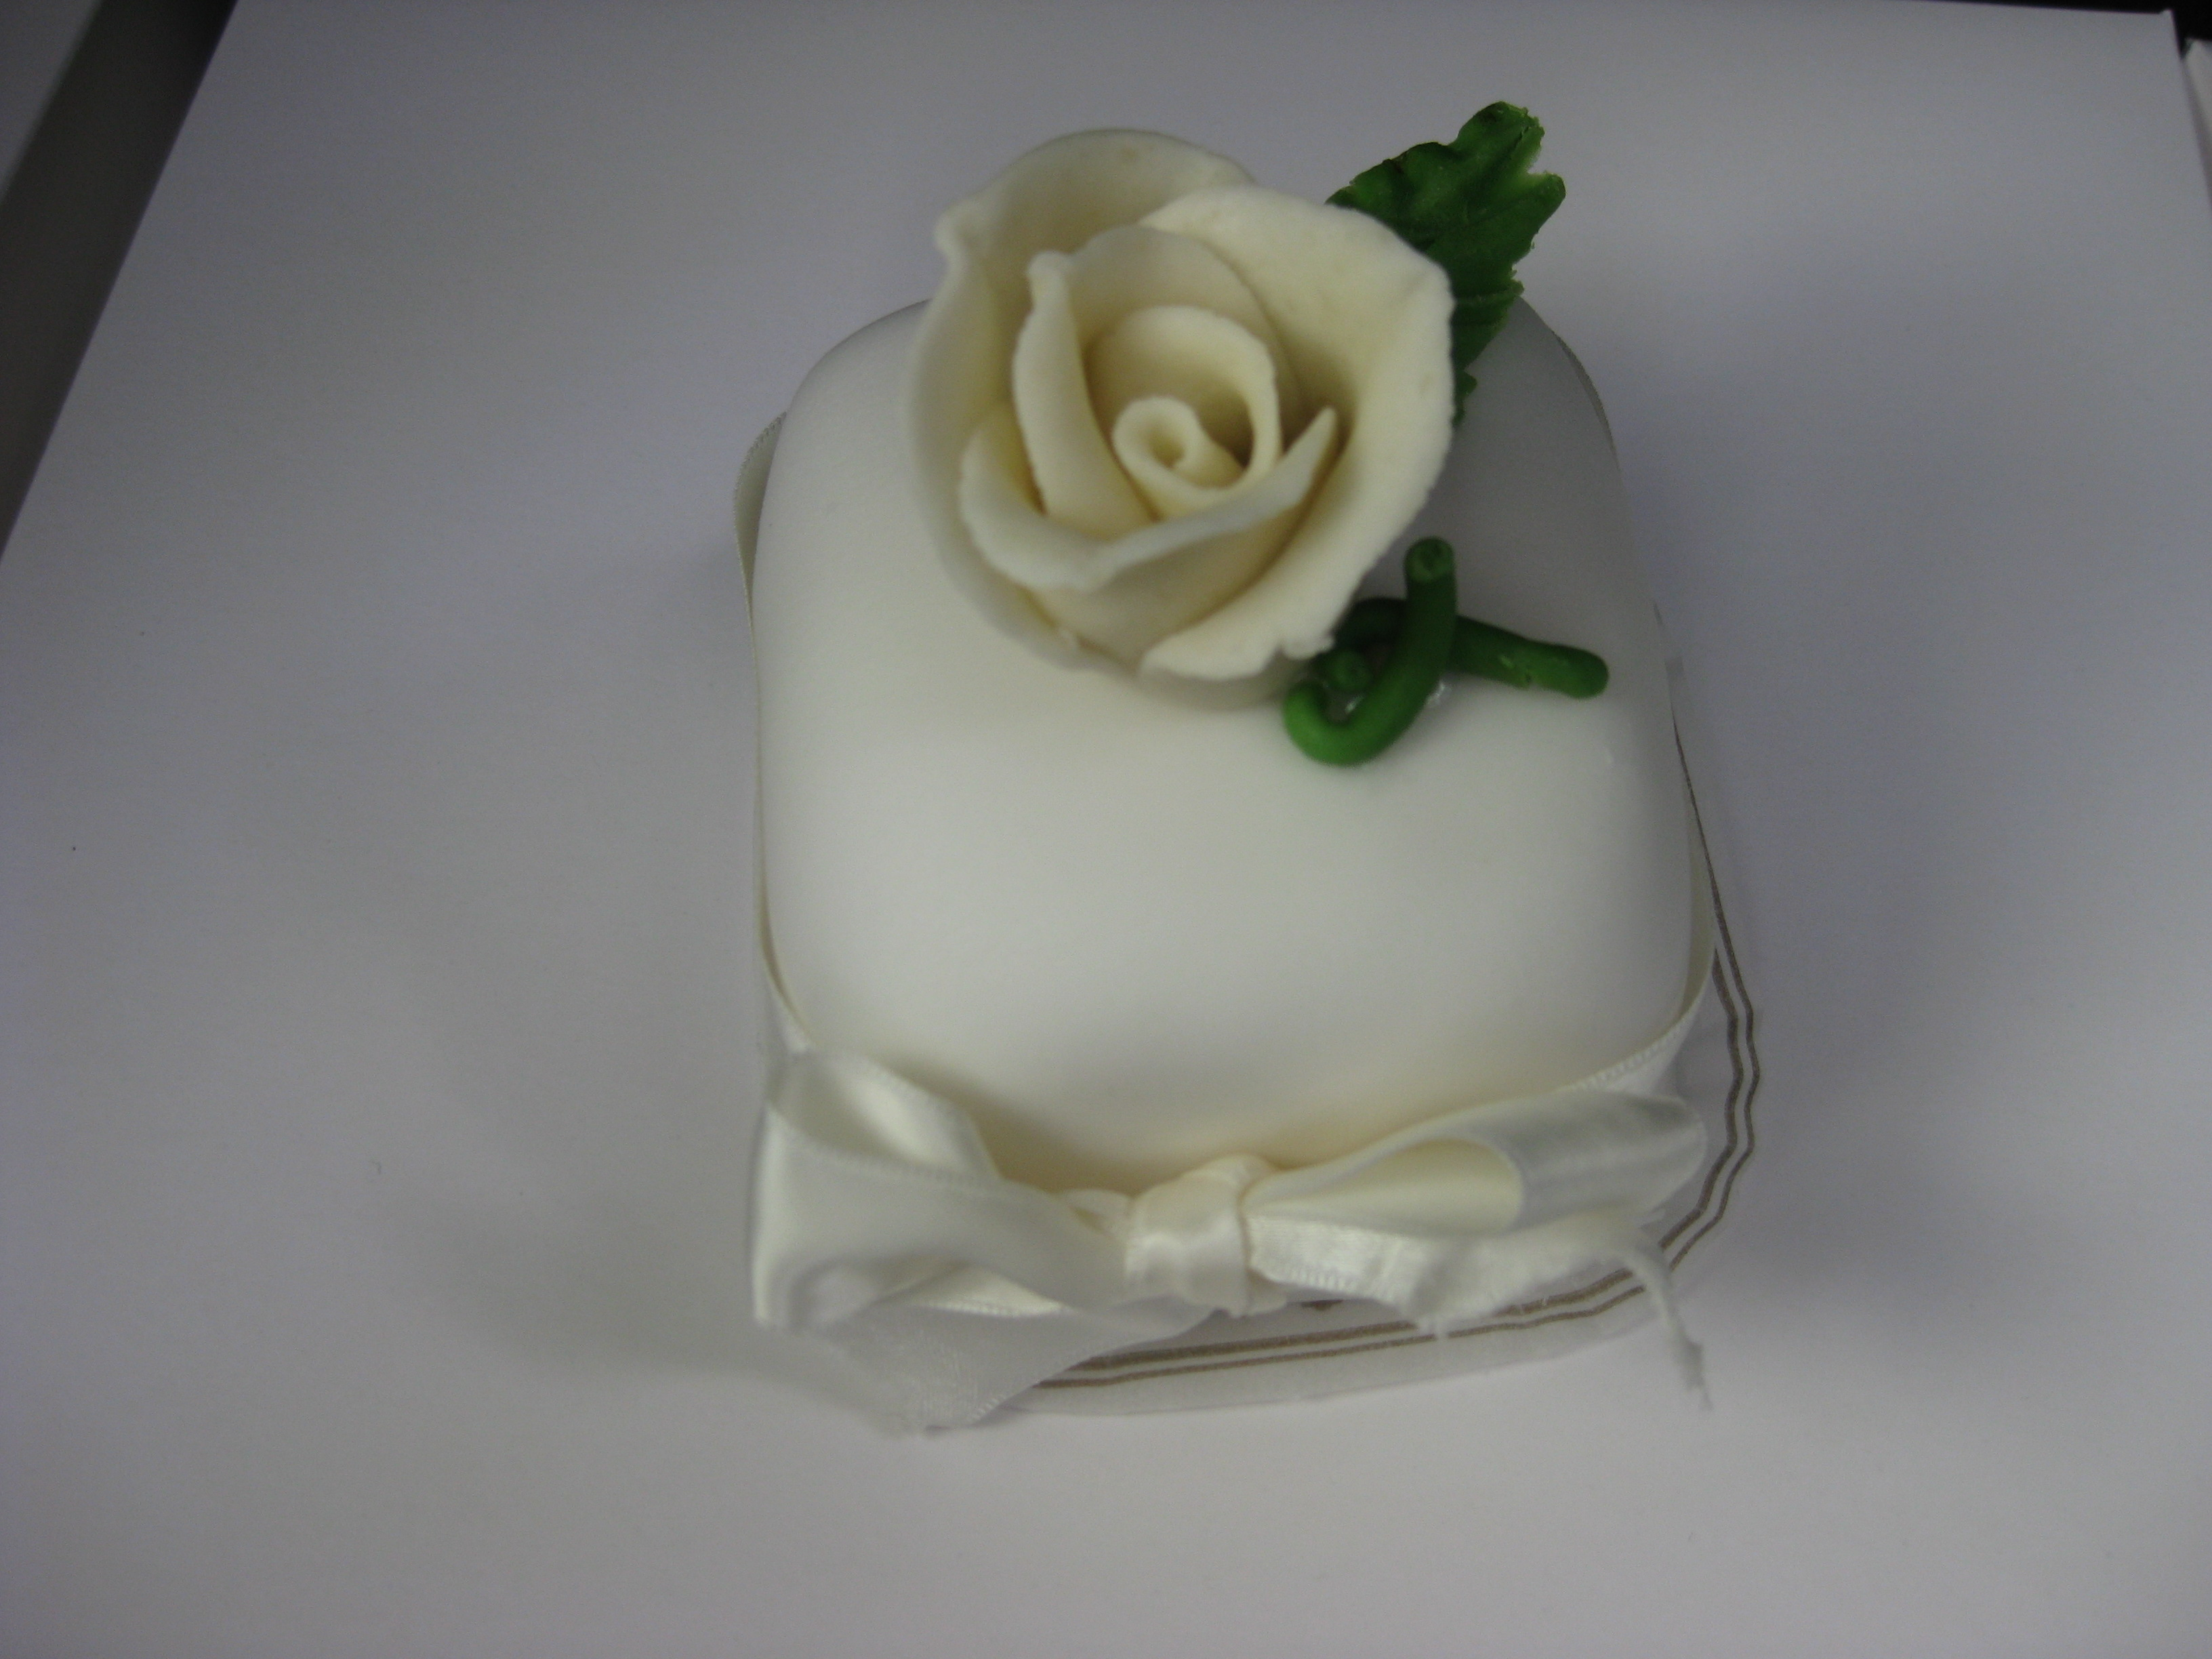 wedding cakes brighton uk wedding cakes brighton 07927 400 301 our website has 23949